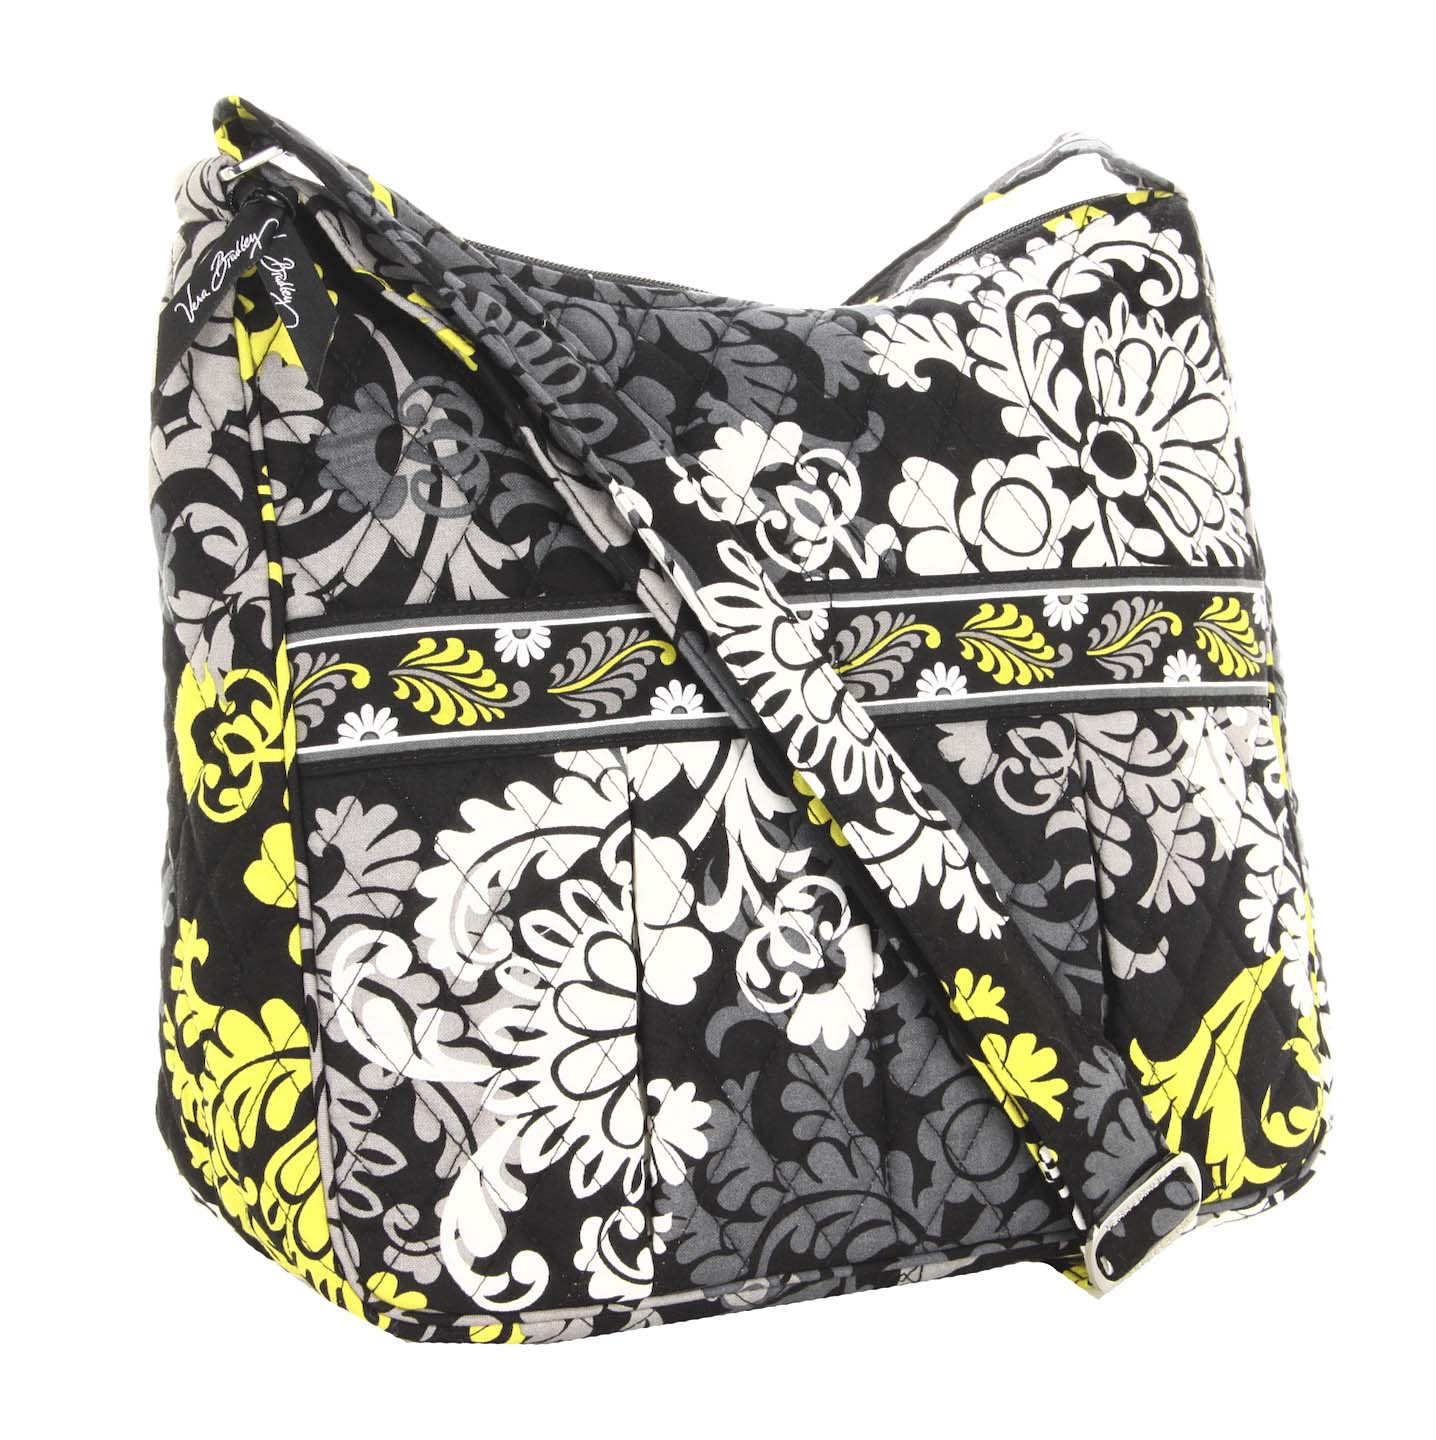 small handbags vera bradley diaper bag. Black Bedroom Furniture Sets. Home Design Ideas